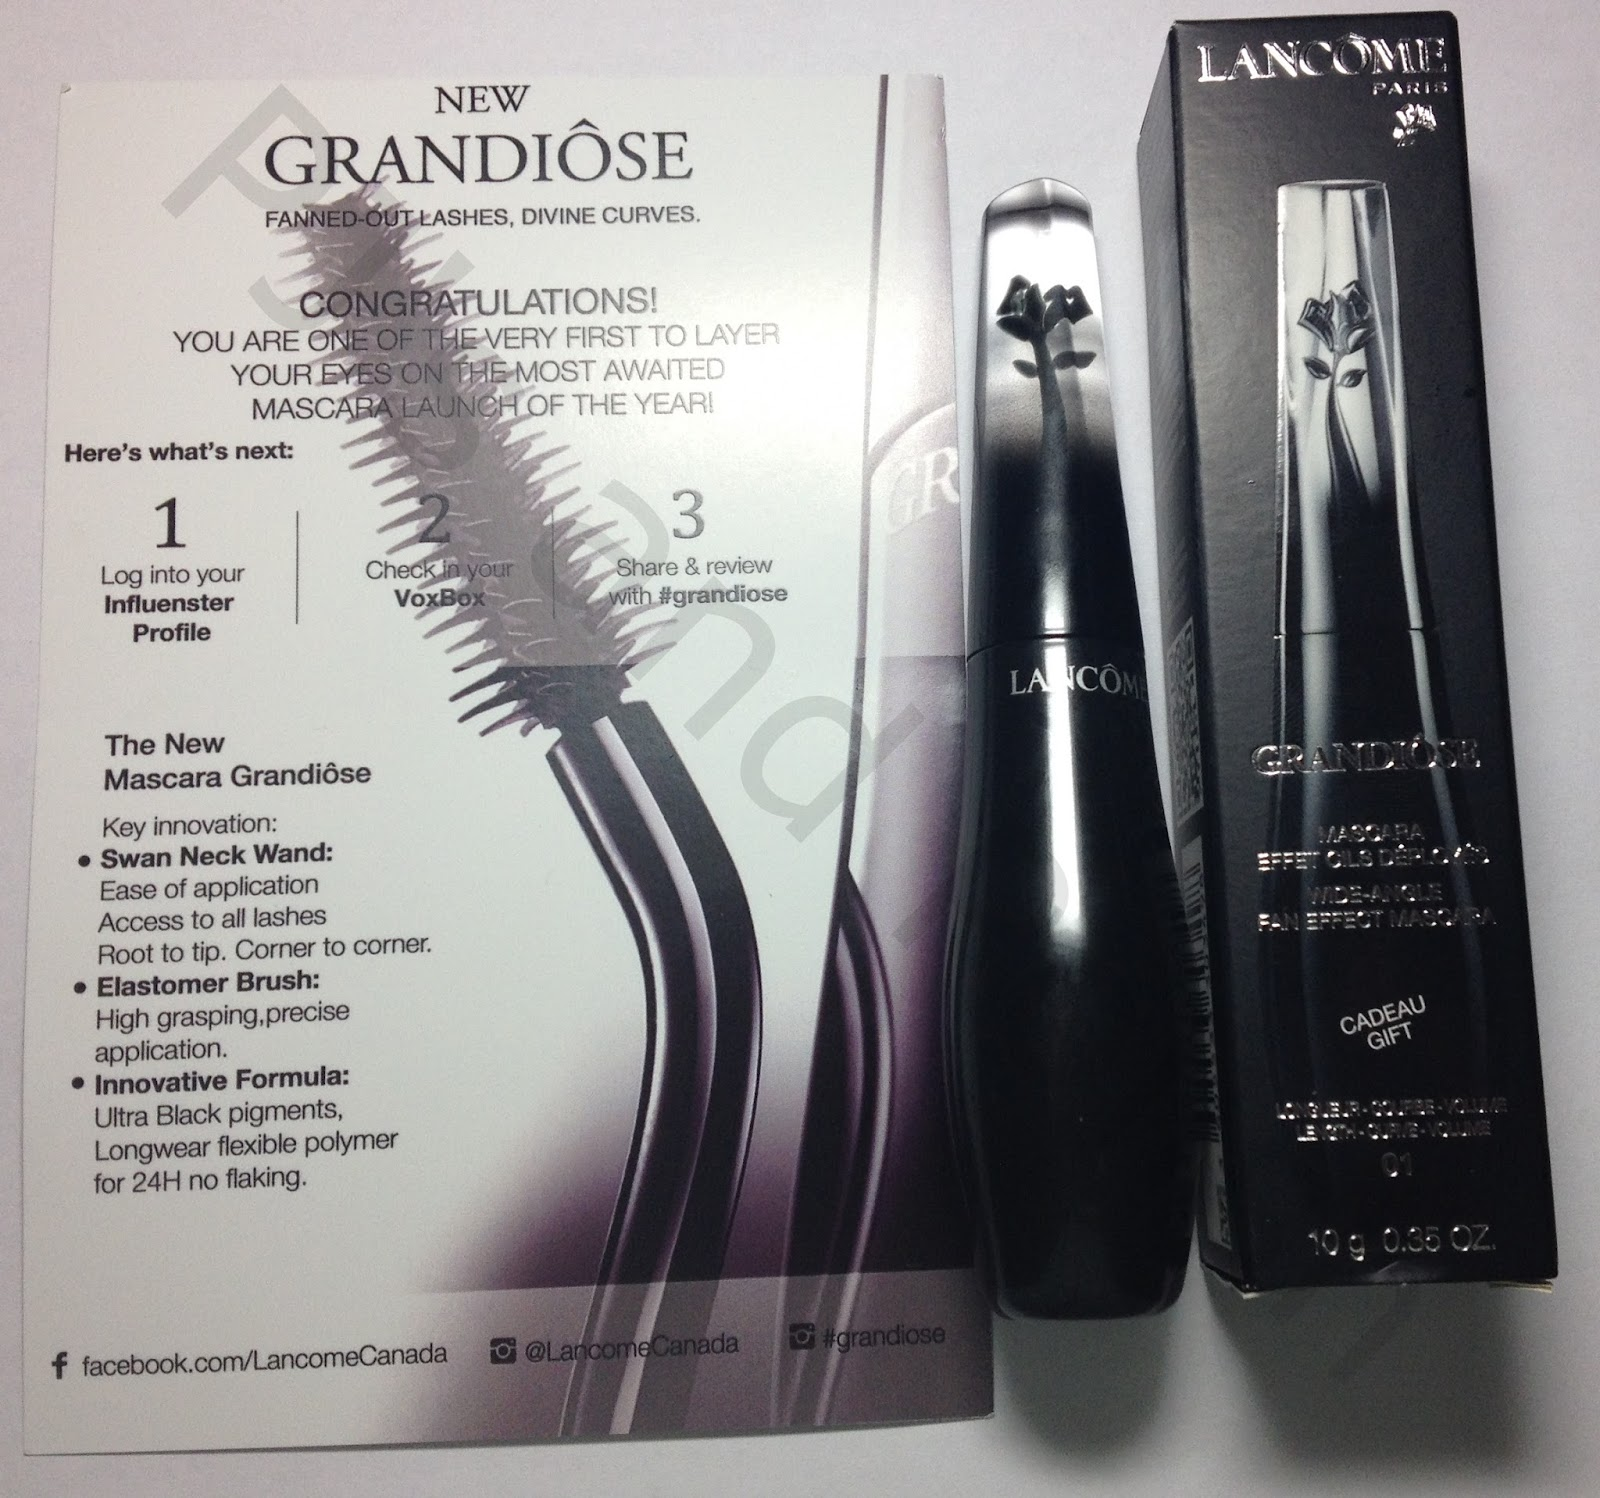 Swatch and Review Beauty Products Lancome Grandiose Mascara Influenster VoxBox